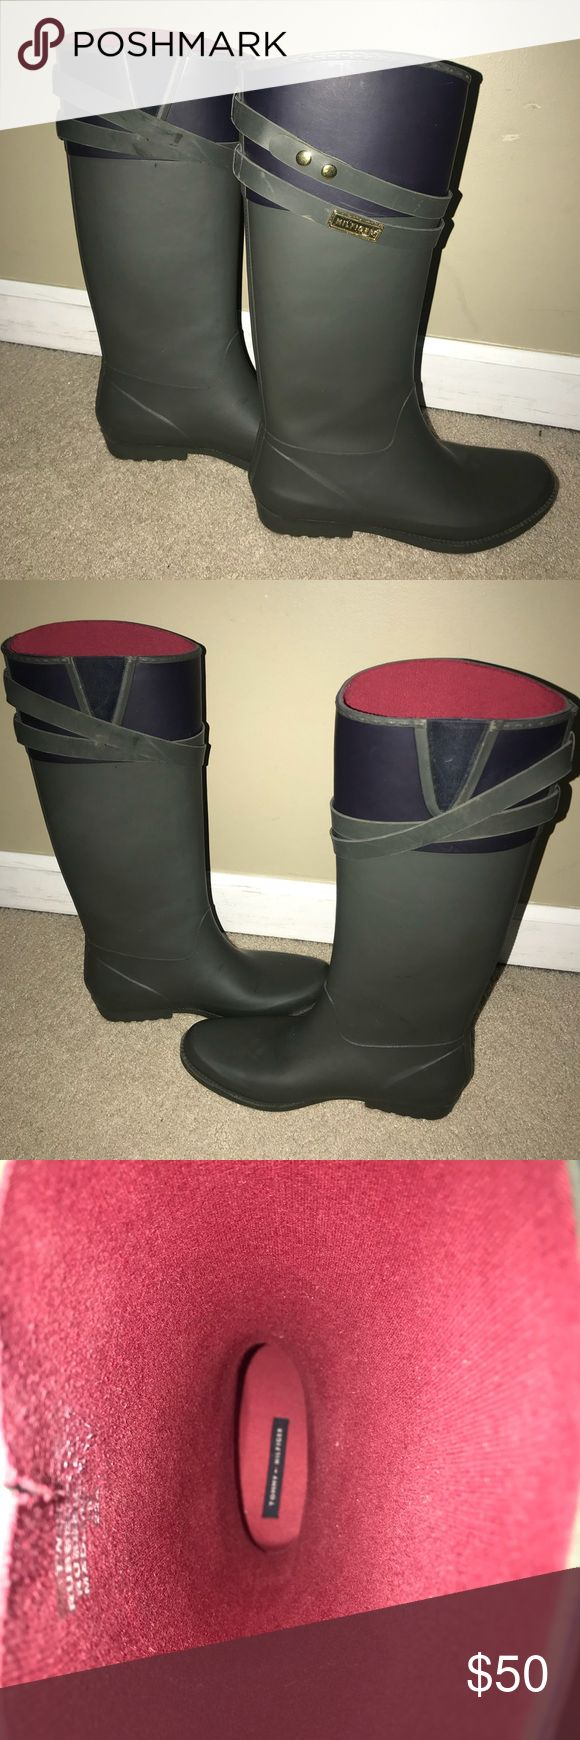 Tommy Hilfiger rain boots these army green and navy rainy boots are absolutely precious!! perfect with skinny jeans and leggings. look slim from the front shot but will fit wider when on. worn 2-4 times Tommy Hilfiger Shoes Winter & Rain Boots